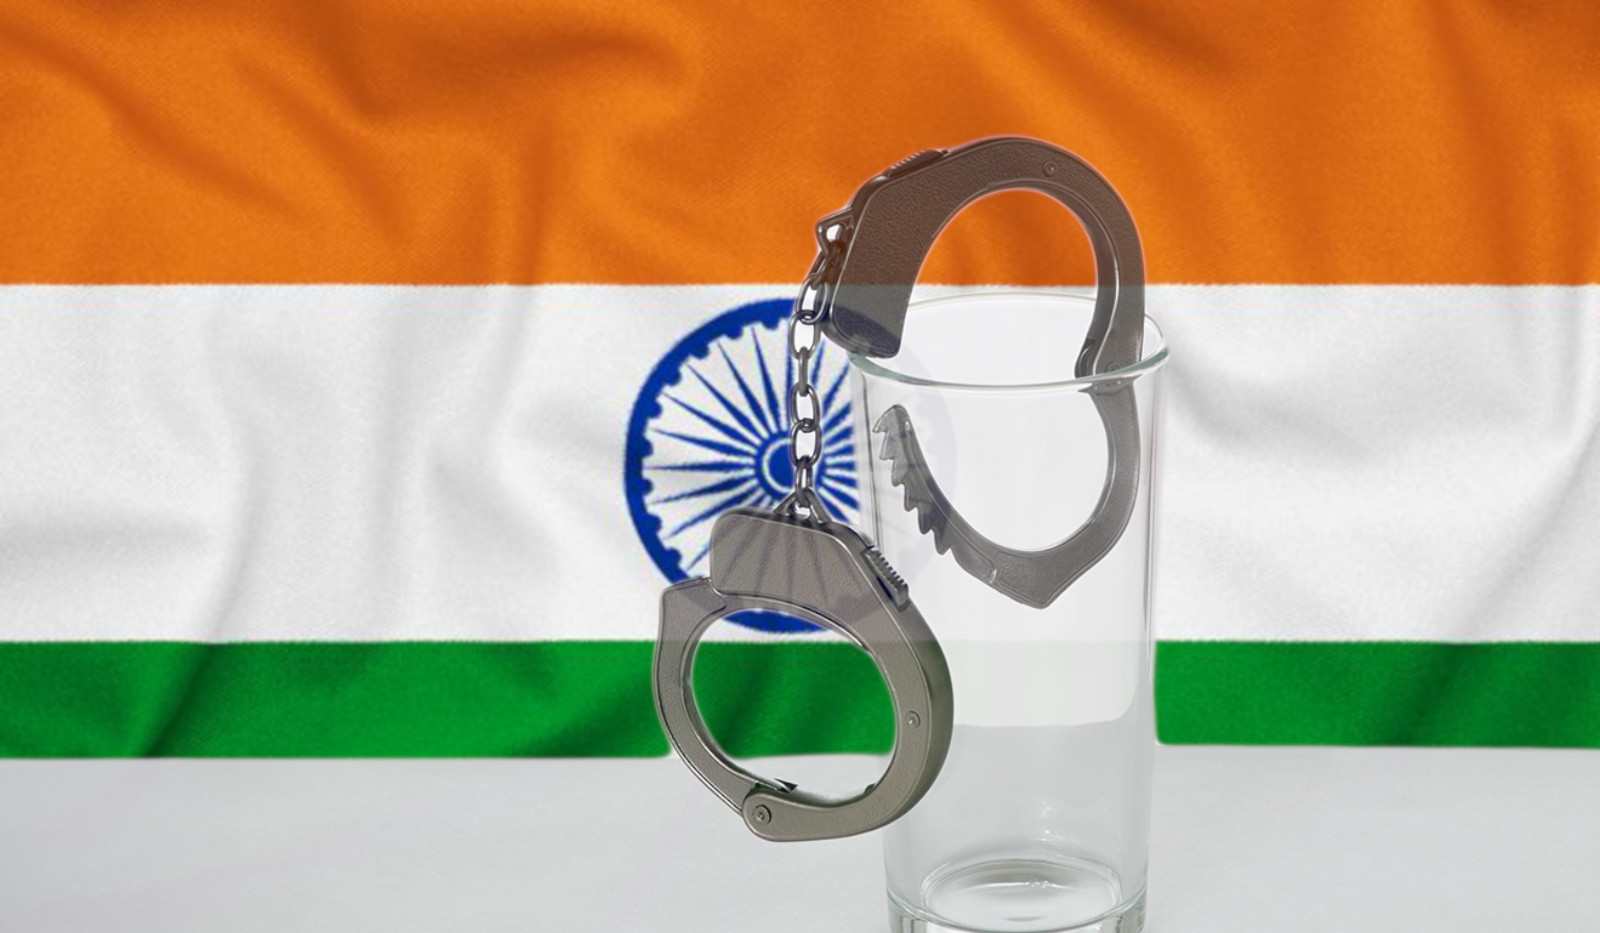 india-bitcoin-arrest-kidnap-extortion-cryptocurrency-warrant-operation-ransom